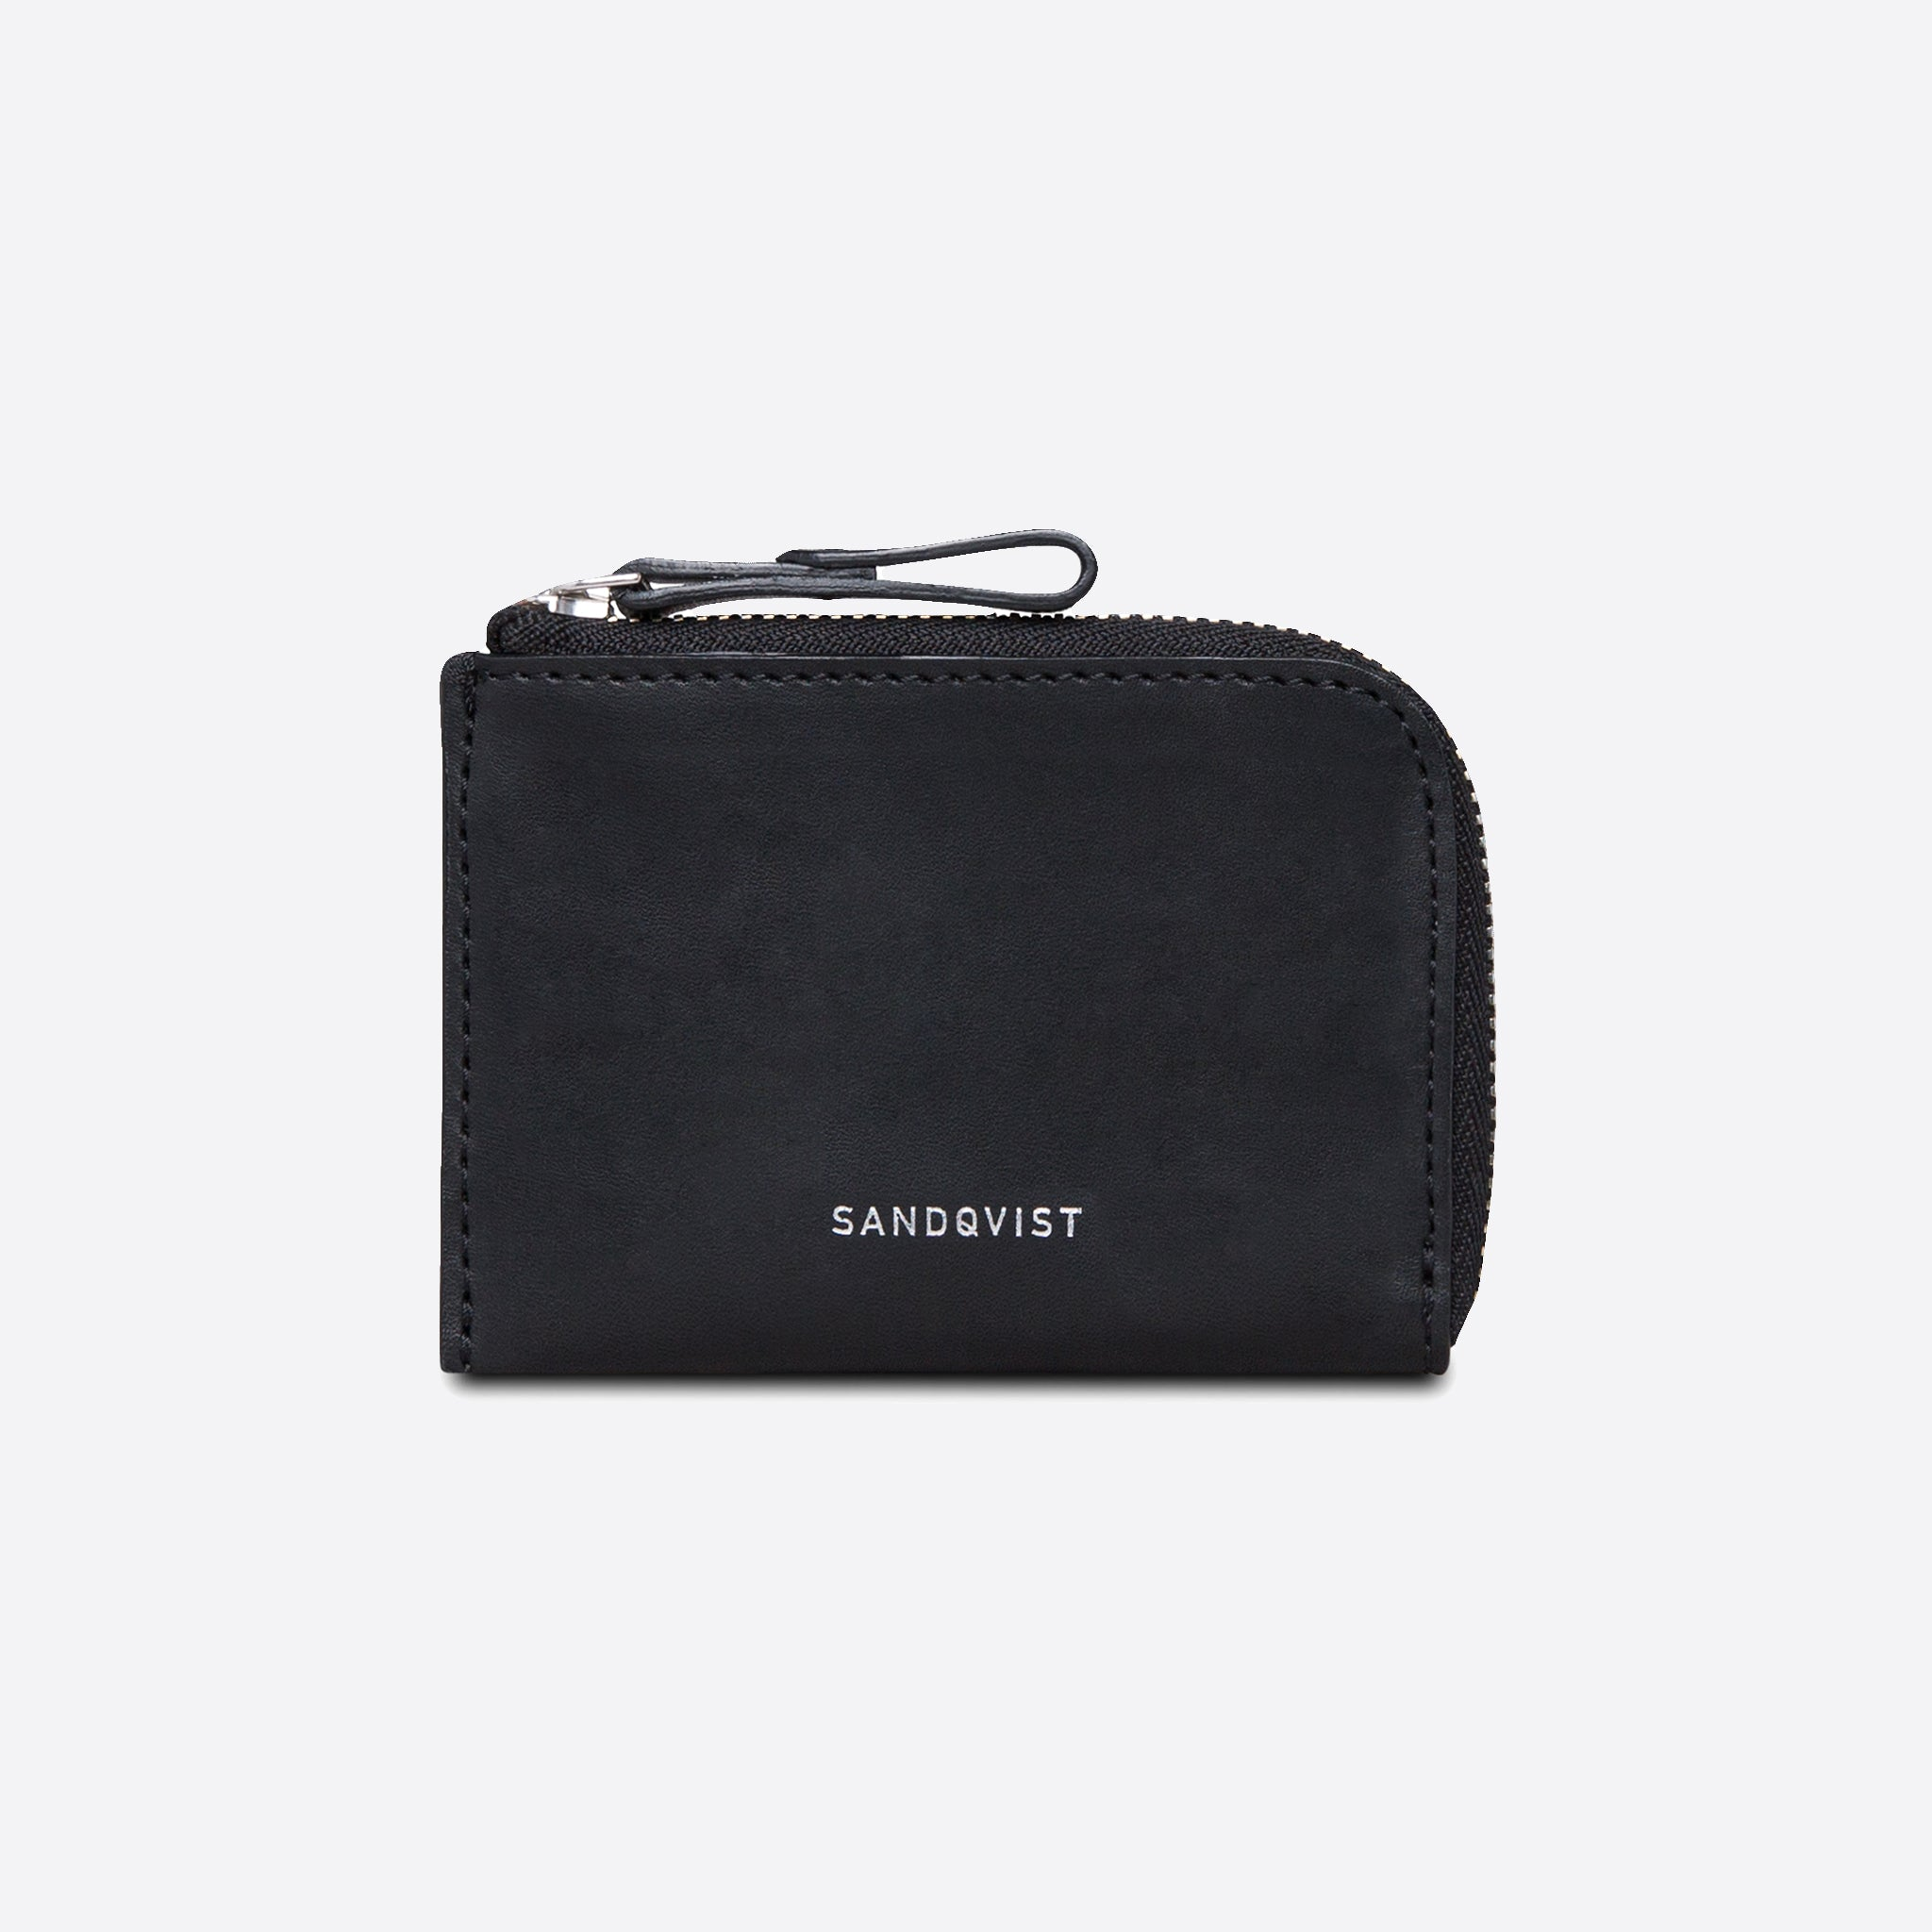 Sandqvist Eben Wallet in Black